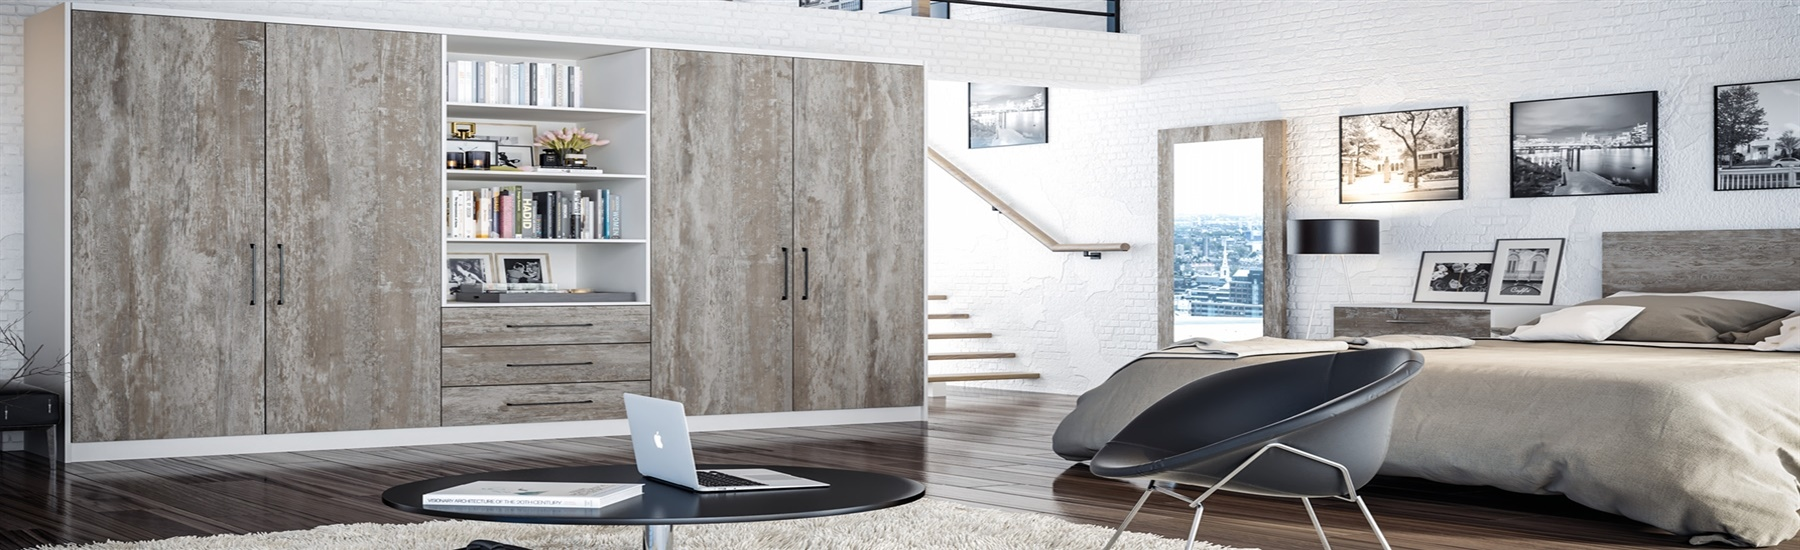 wardrobe-door-valore-header-1